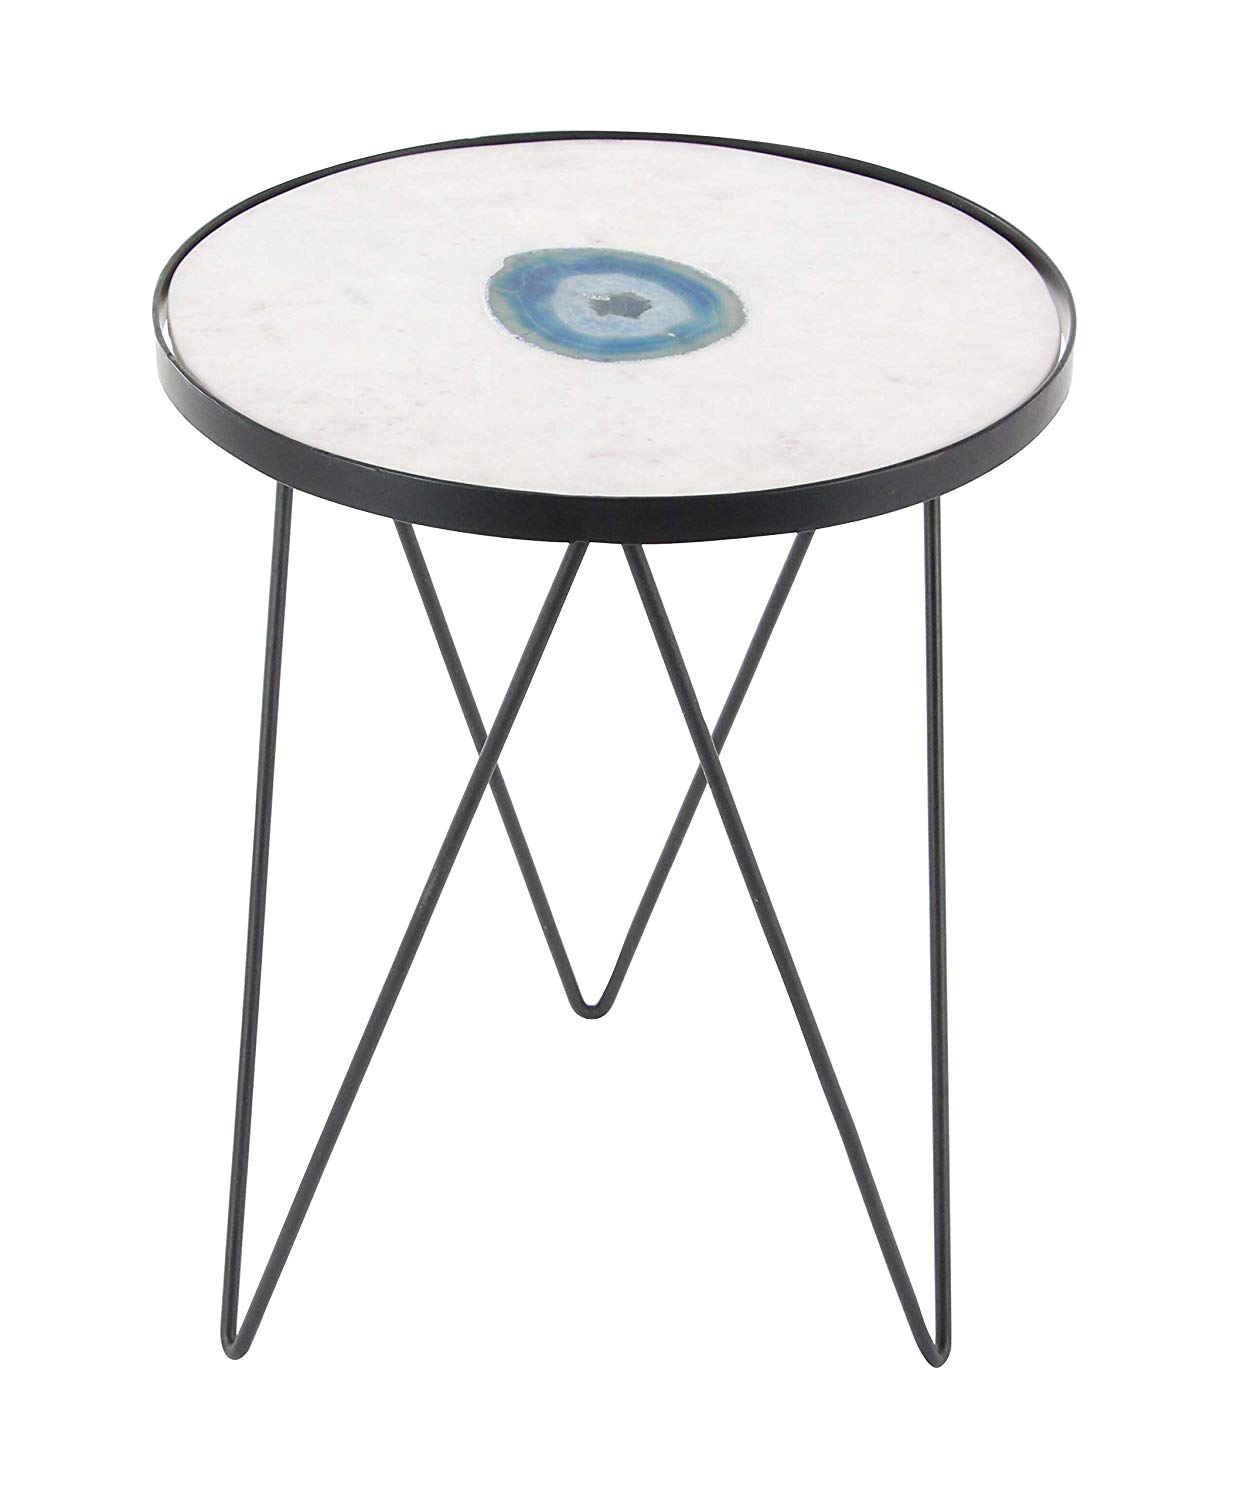 charming white marble and metal round accent table small for faux tablecloth pedestal wooden unfinished wood ideas covers decorating threshold side full size kmart mirror mesh